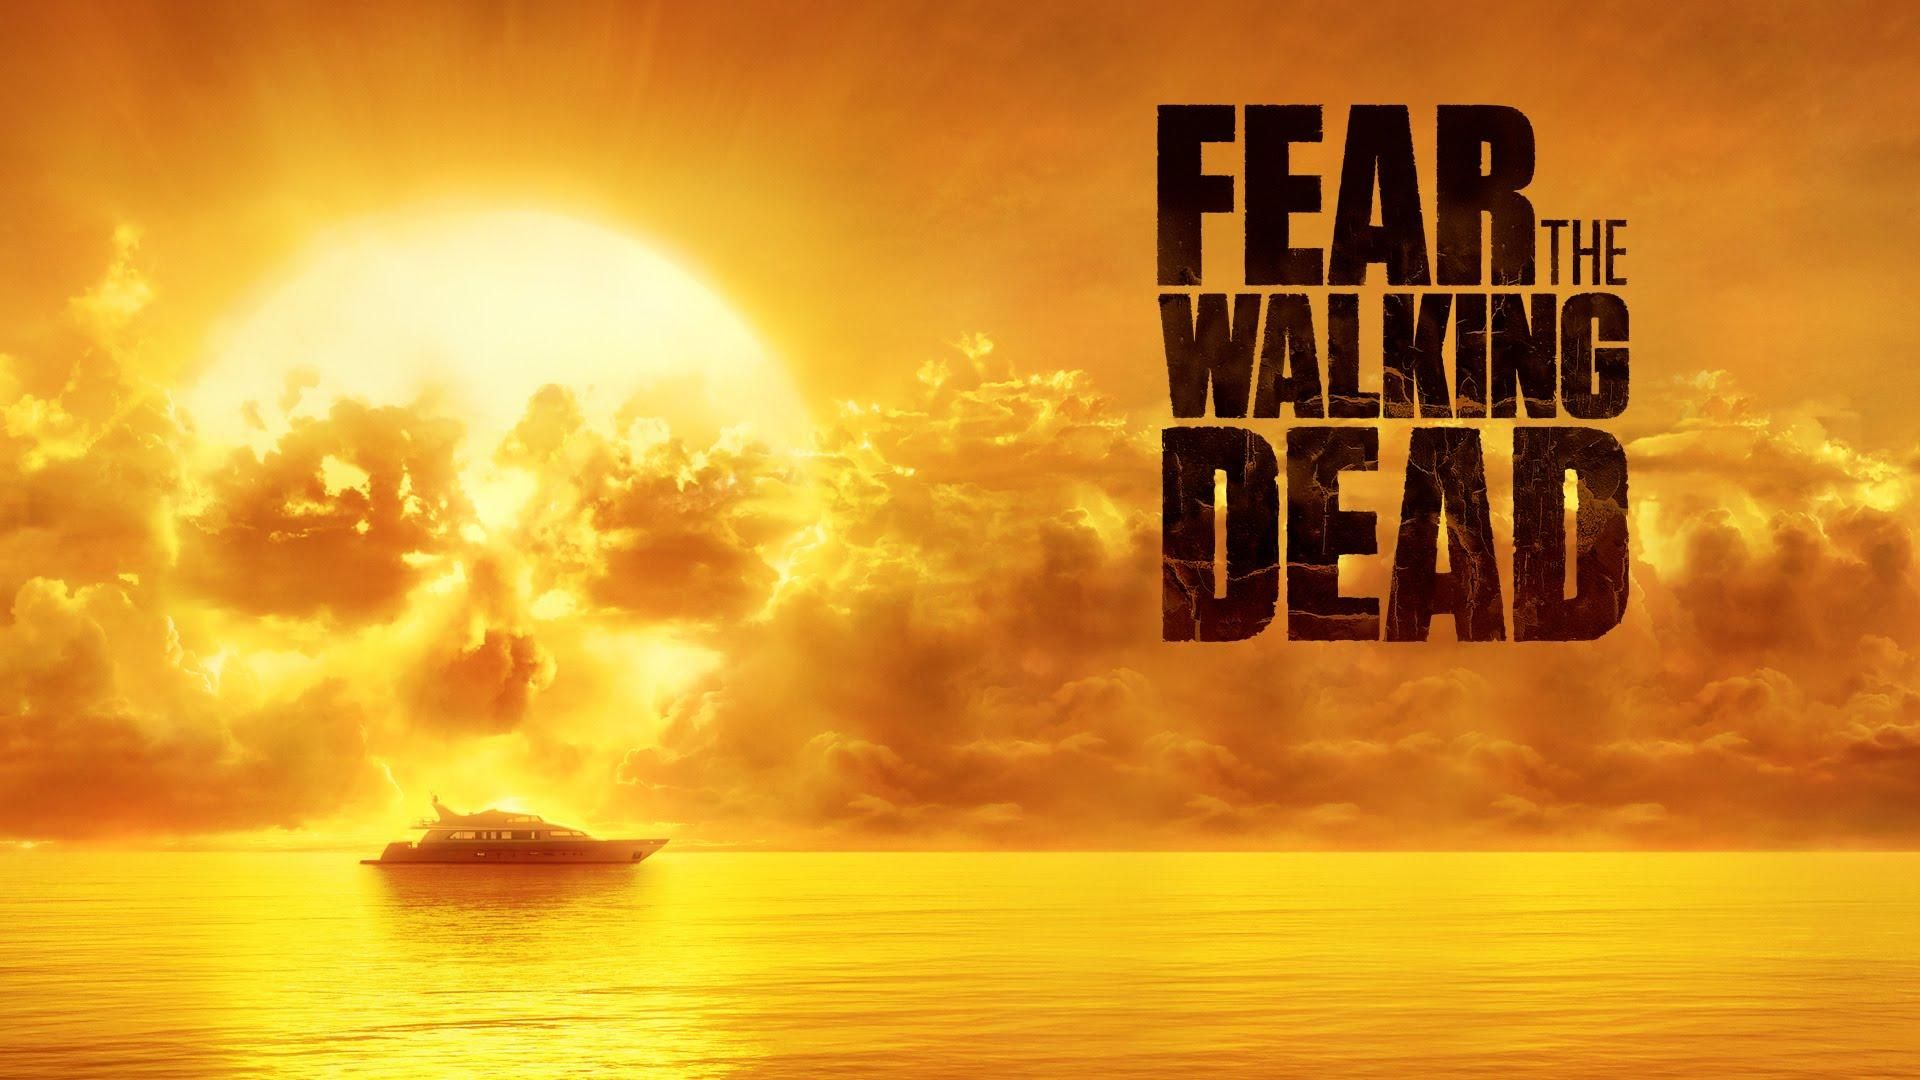 Fear The Walking Dead Wallpapers Top Free Fear The Walking Dead